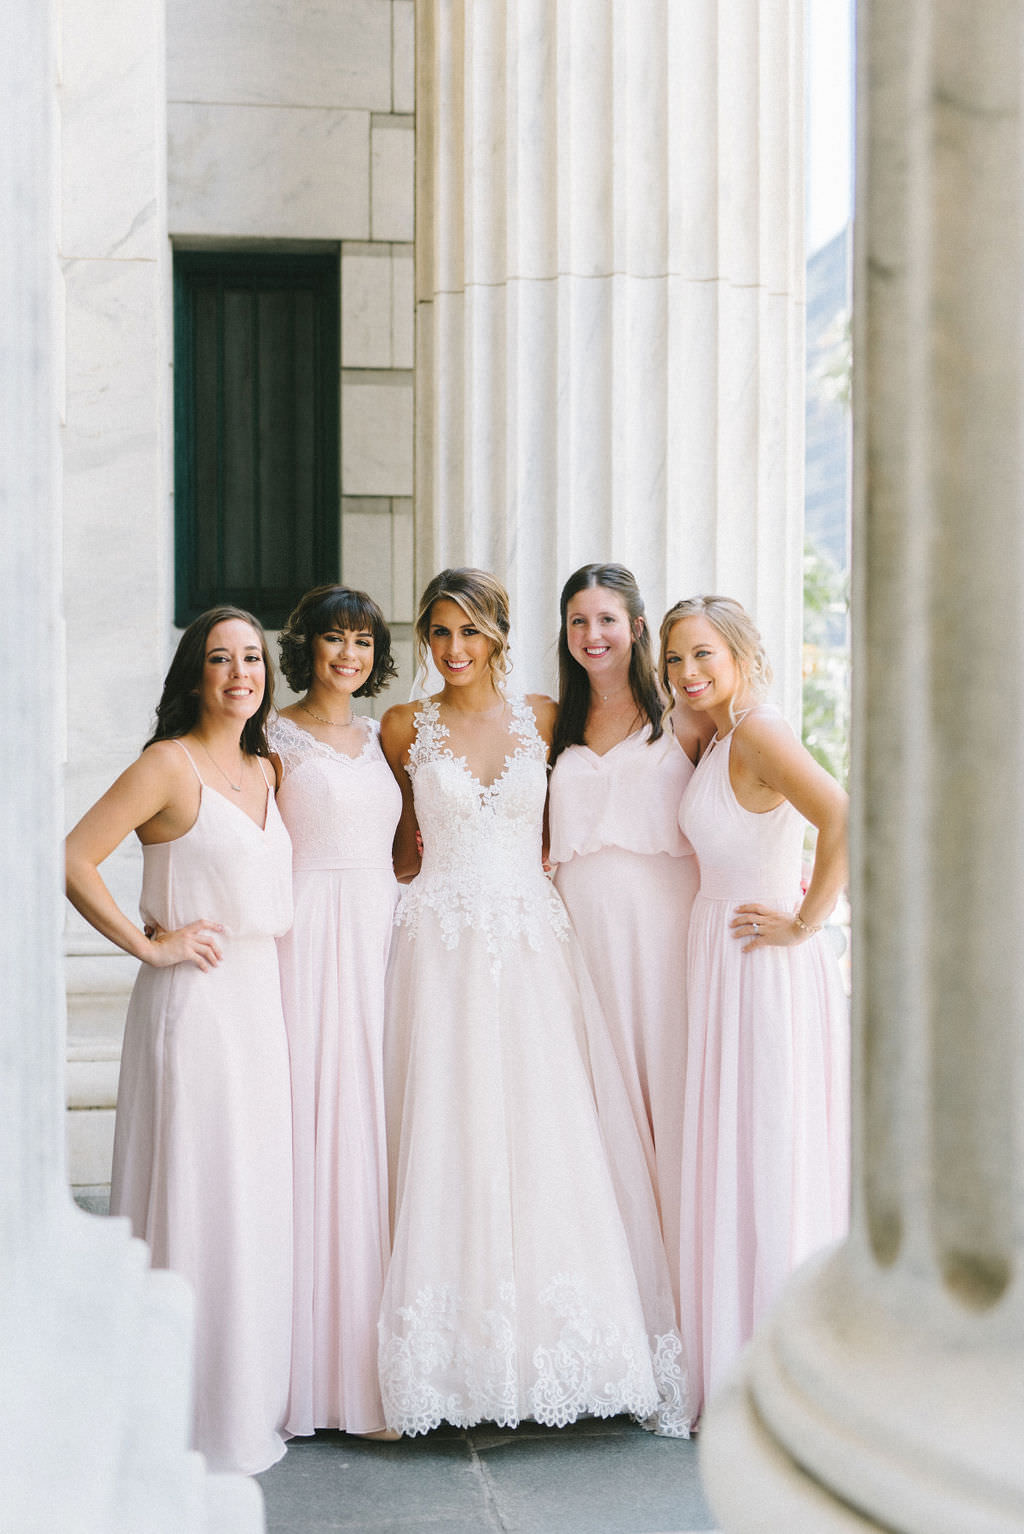 Tampa Bay Bride and Bridesmaids Wedding Portrait, Bridesmaids in Blush Pink Long Mismatched Style Dresses, Bride in Lace and Tulle White and Ivory A Line Sweetheart and Illusion Neckline with Straps Wedding Dress   Photographer Kera Photography